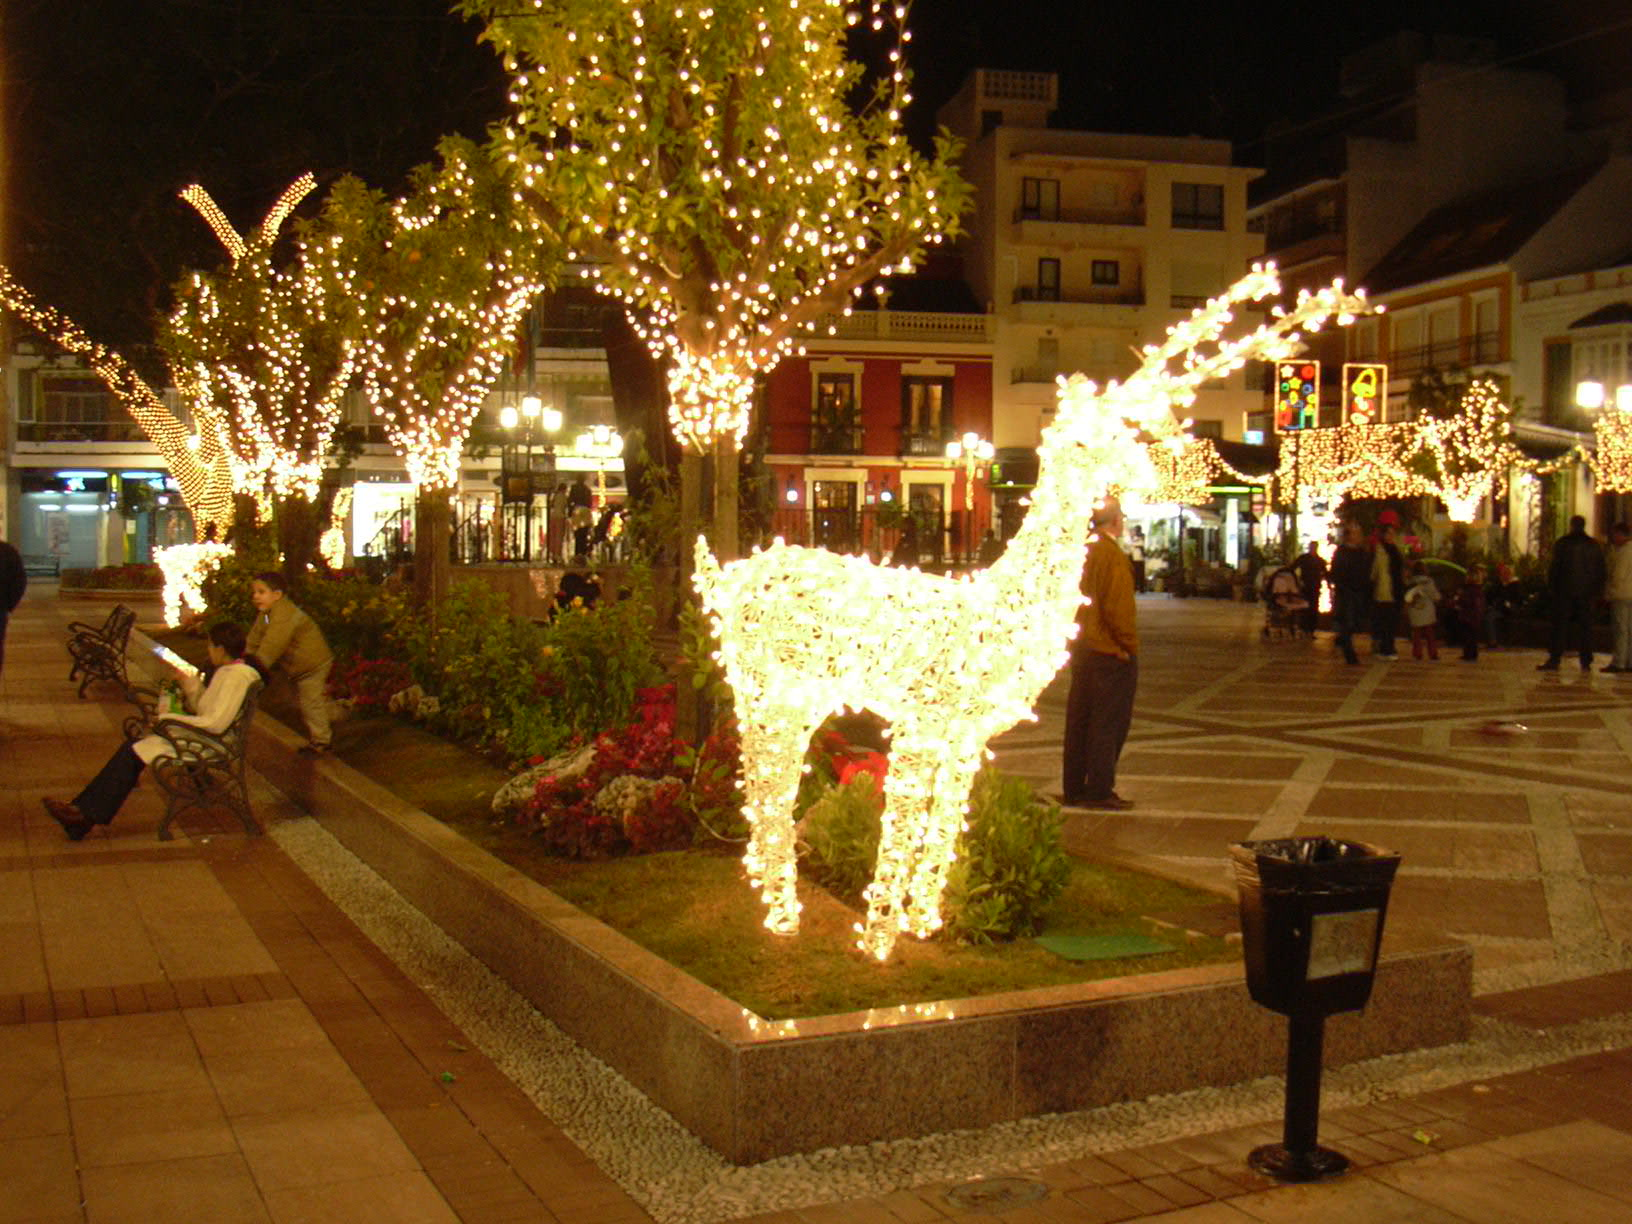 Christmas and New Year's Eve in Fuengirola